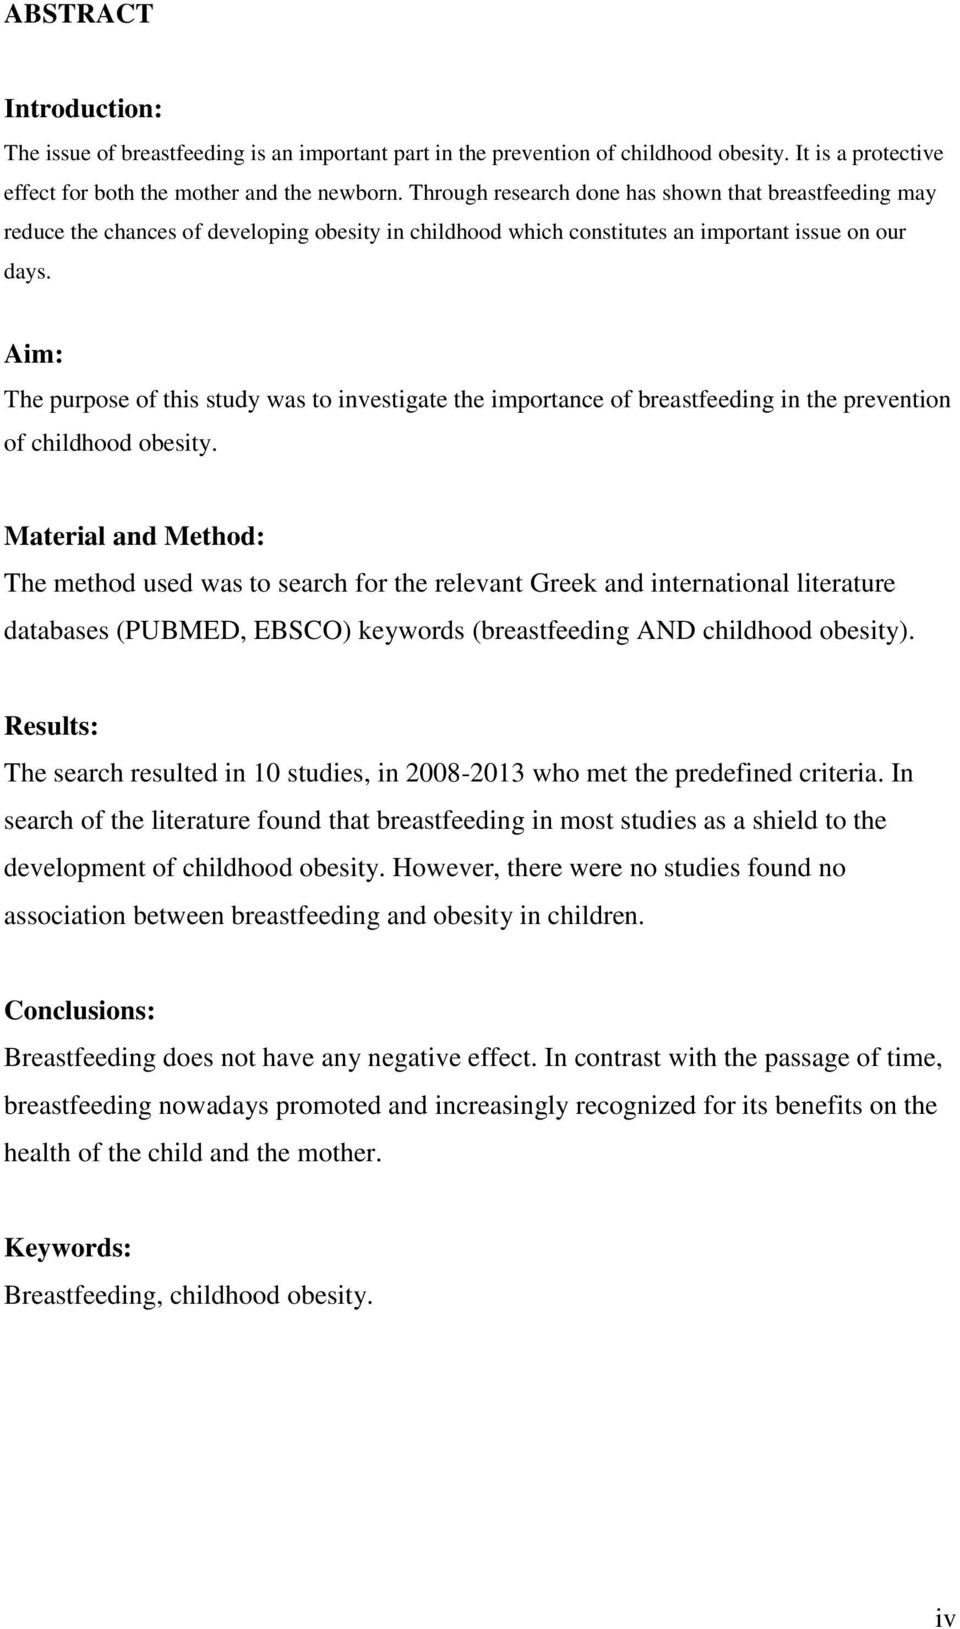 Aim: The purpose of this study was to investigate the importance of breastfeeding in the prevention of childhood obesity.